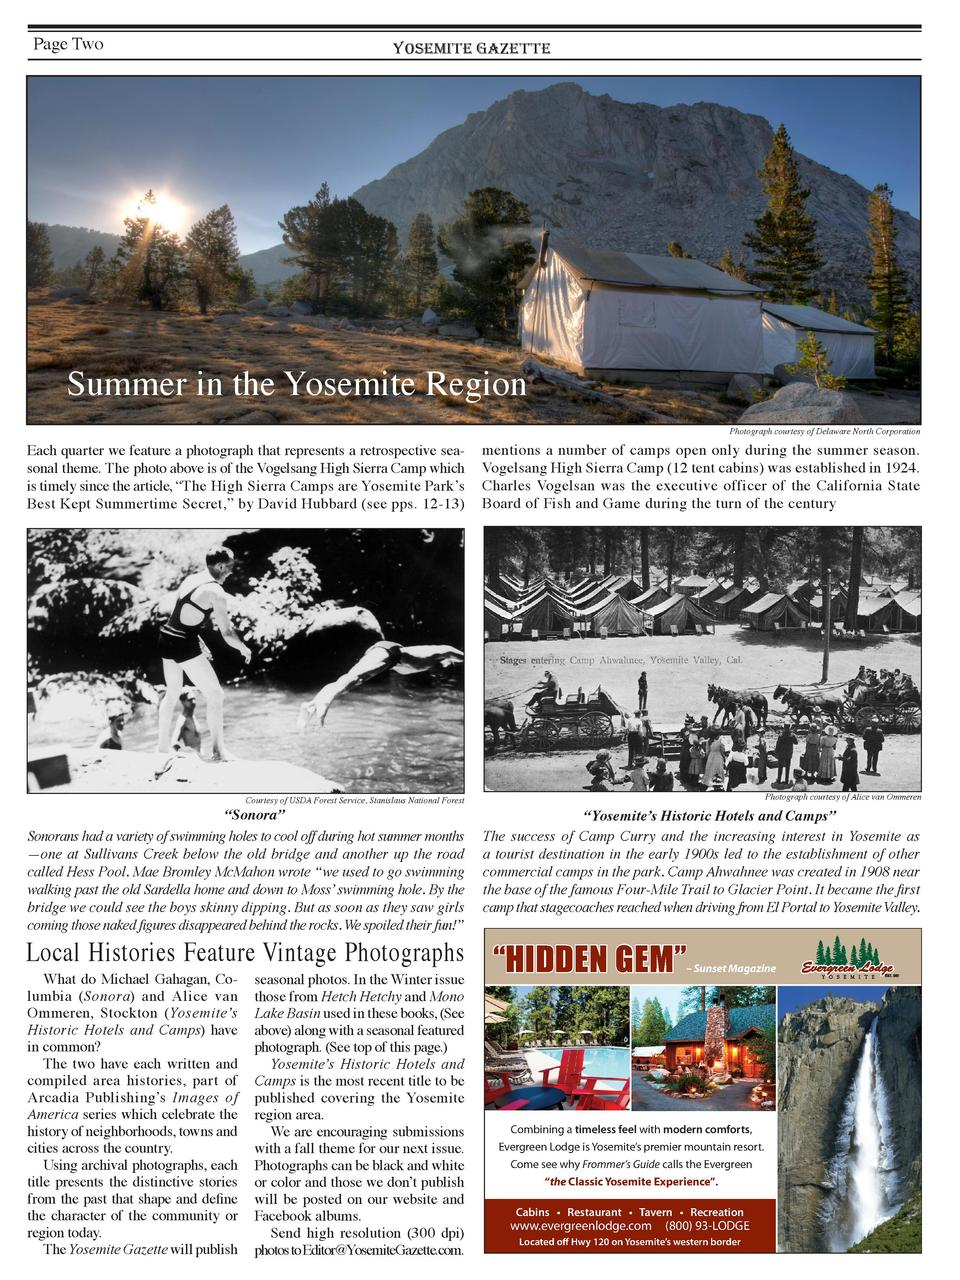 Page Two  YOSEMITE GAZETTE  Summer in the Yosemite Region Photograph courtesy of Delaware North Corporation  Each quarter ...